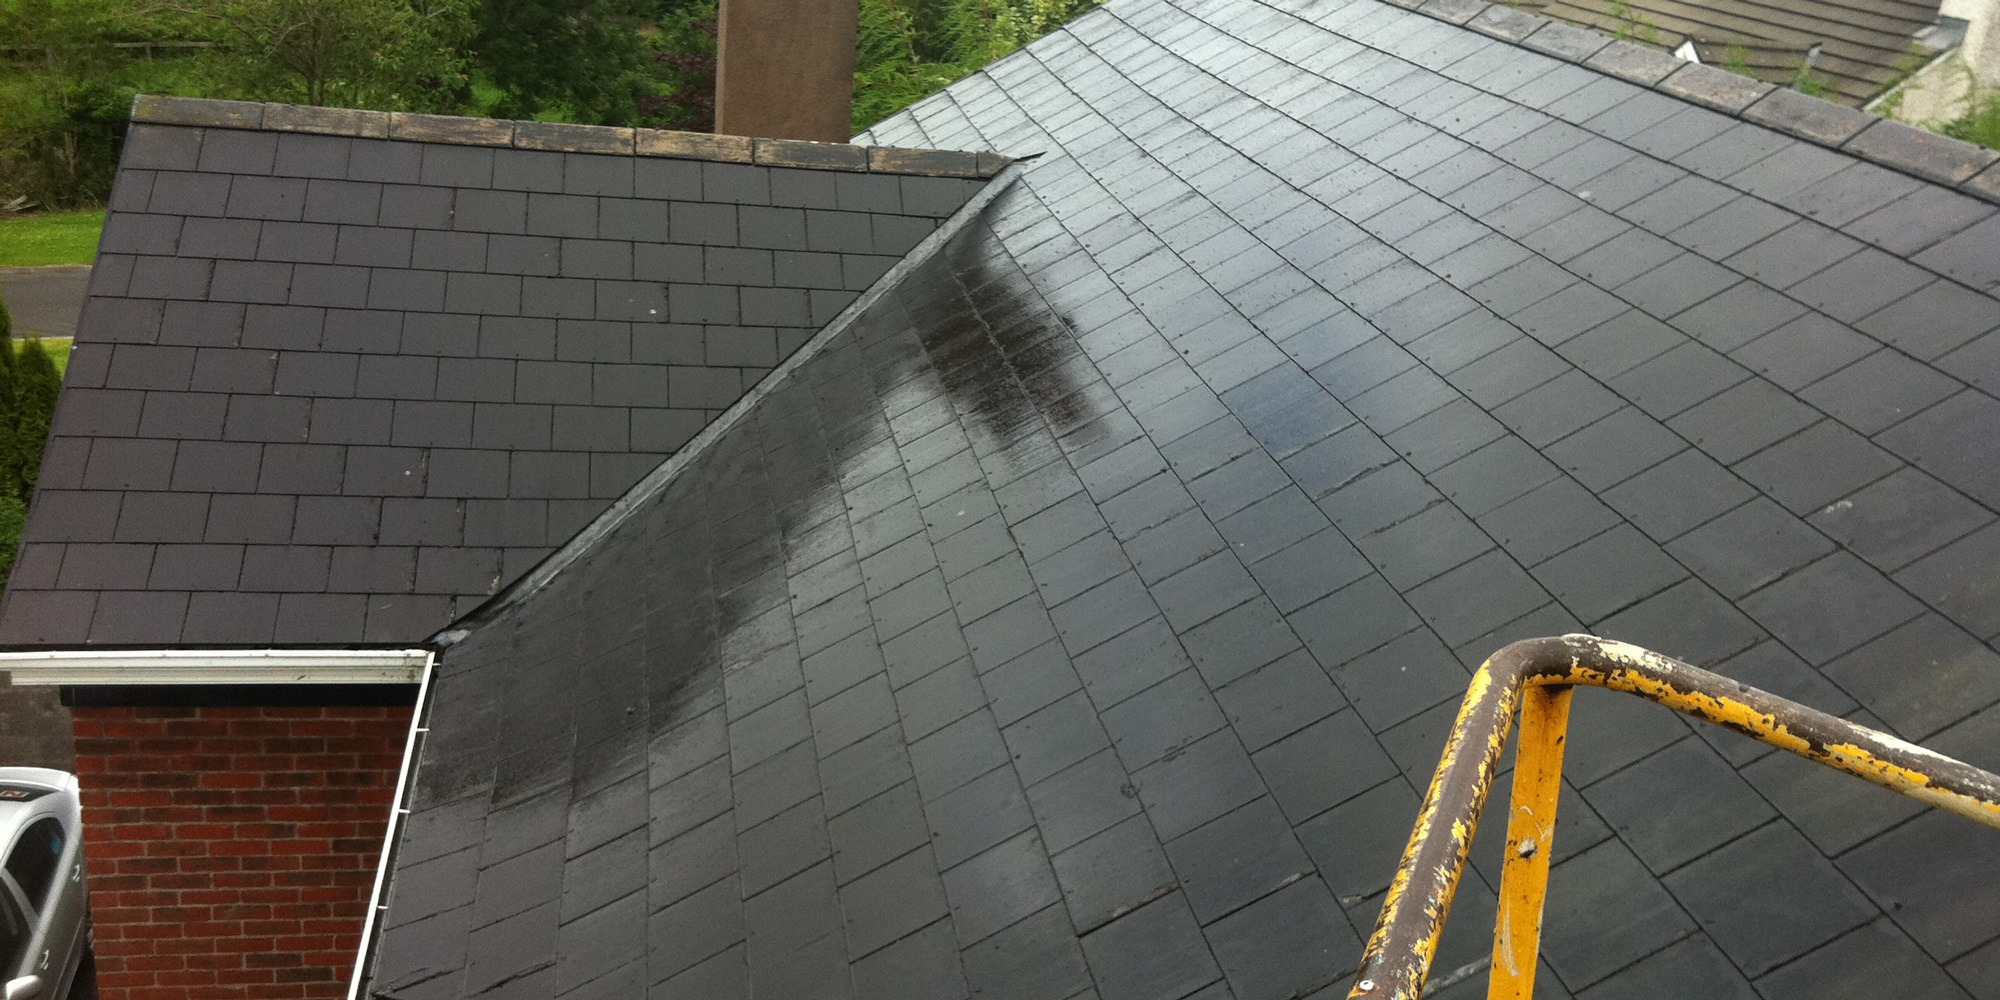 Roof-cleaning-services-in-Mayo,-Sligo,-Roscommon,-Galway-Ireland